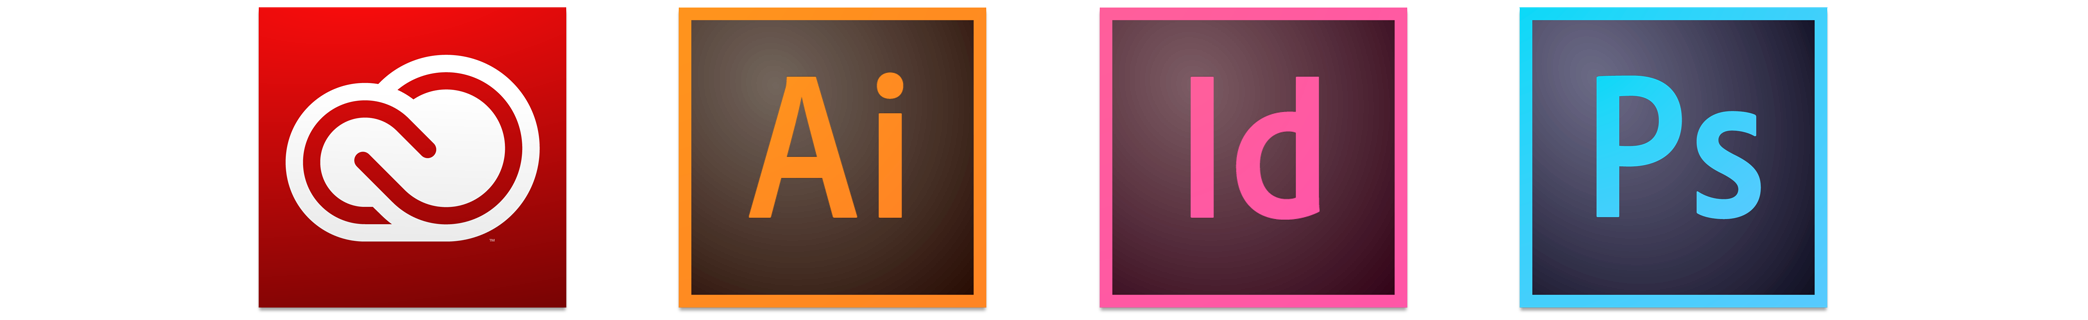 Adobe CC 2014 icons